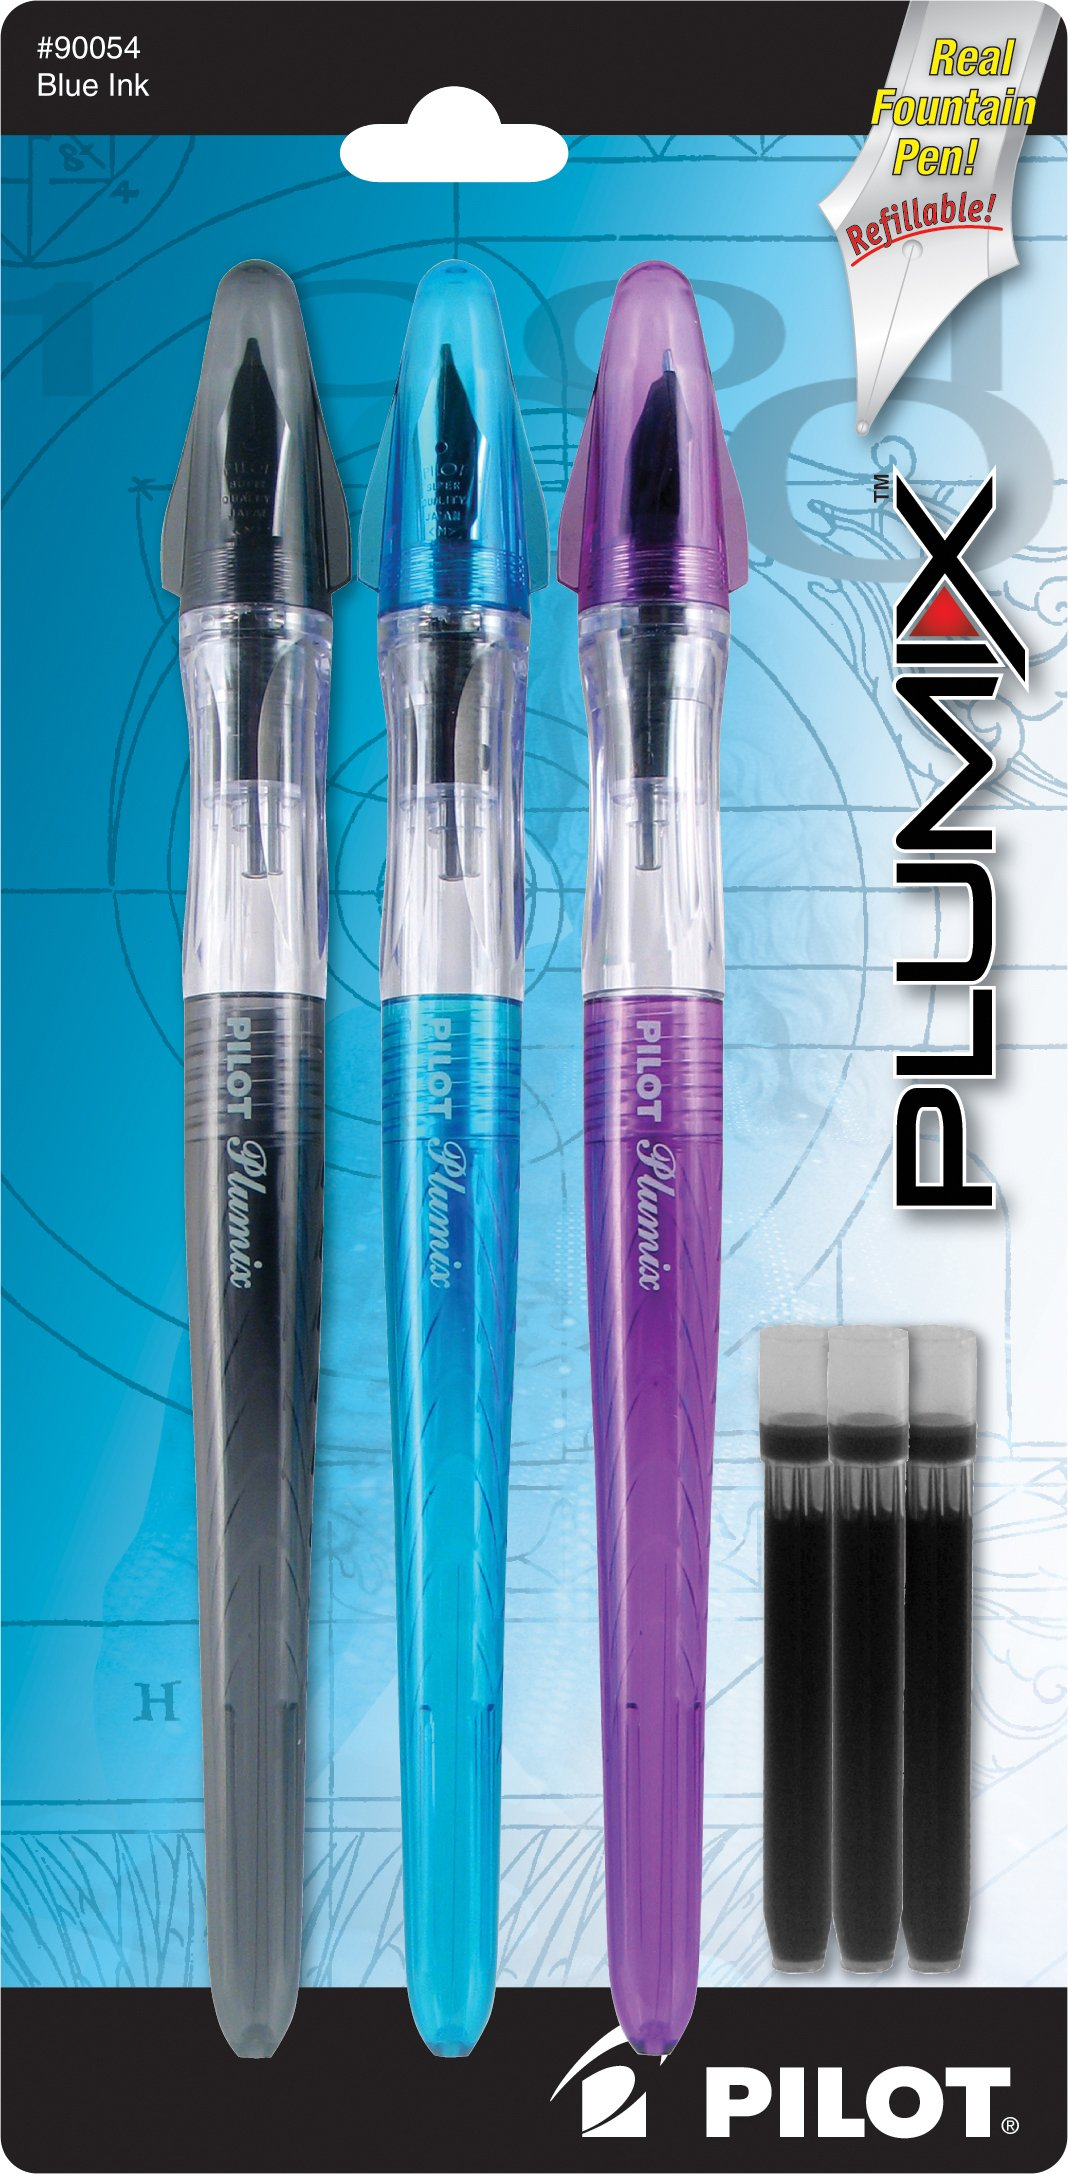 Pilot Plumix Refillable Fountain Pens, Assorted Color...